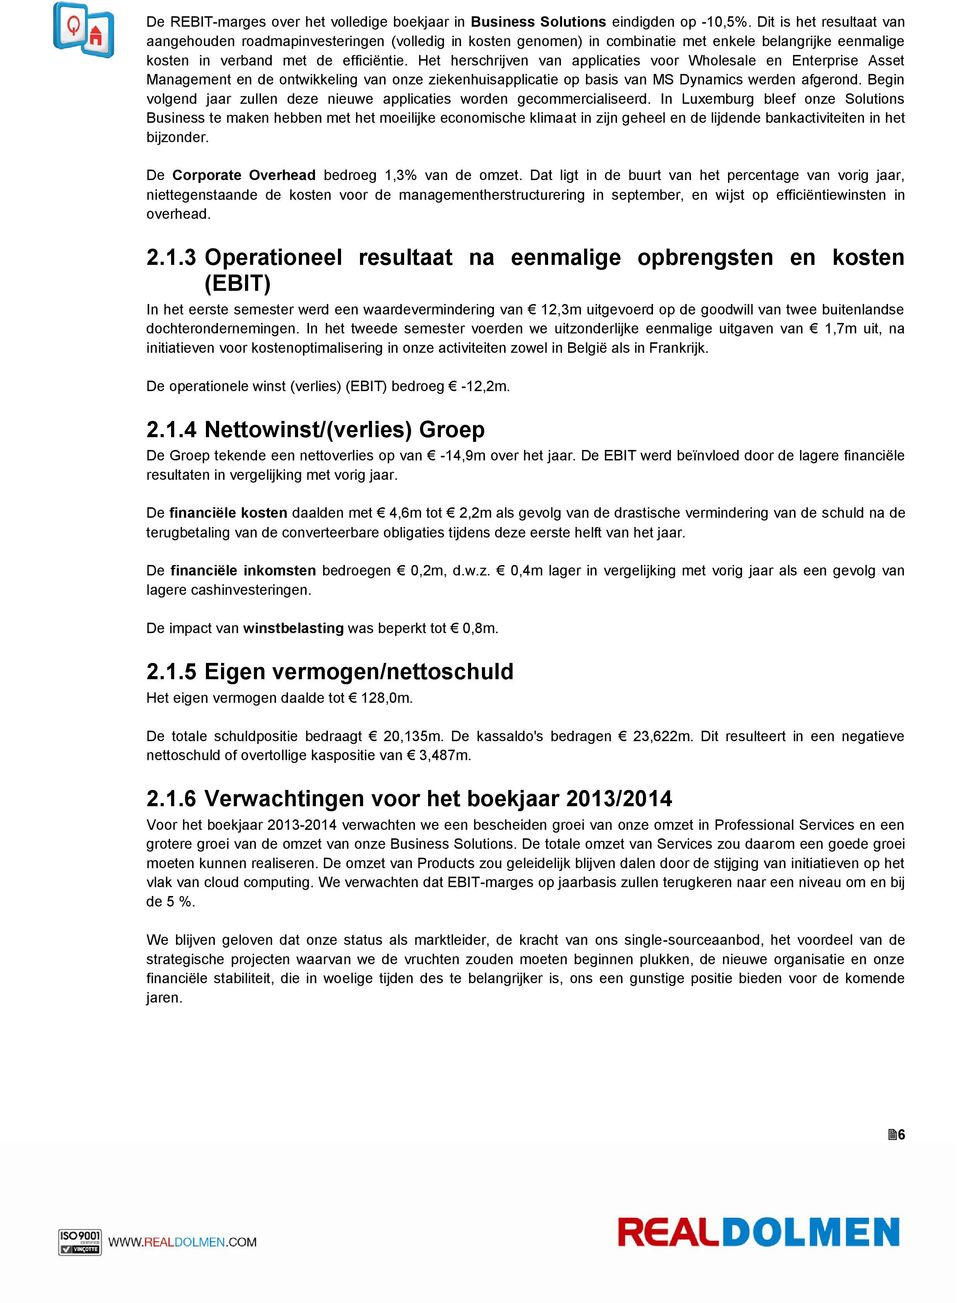 Het herschrijven van applicaties voor Wholesale en Enterprise Asset Management en de ontwikkeling van onze ziekenhuisapplicatie op basis van MS Dynamics werden afgerond.